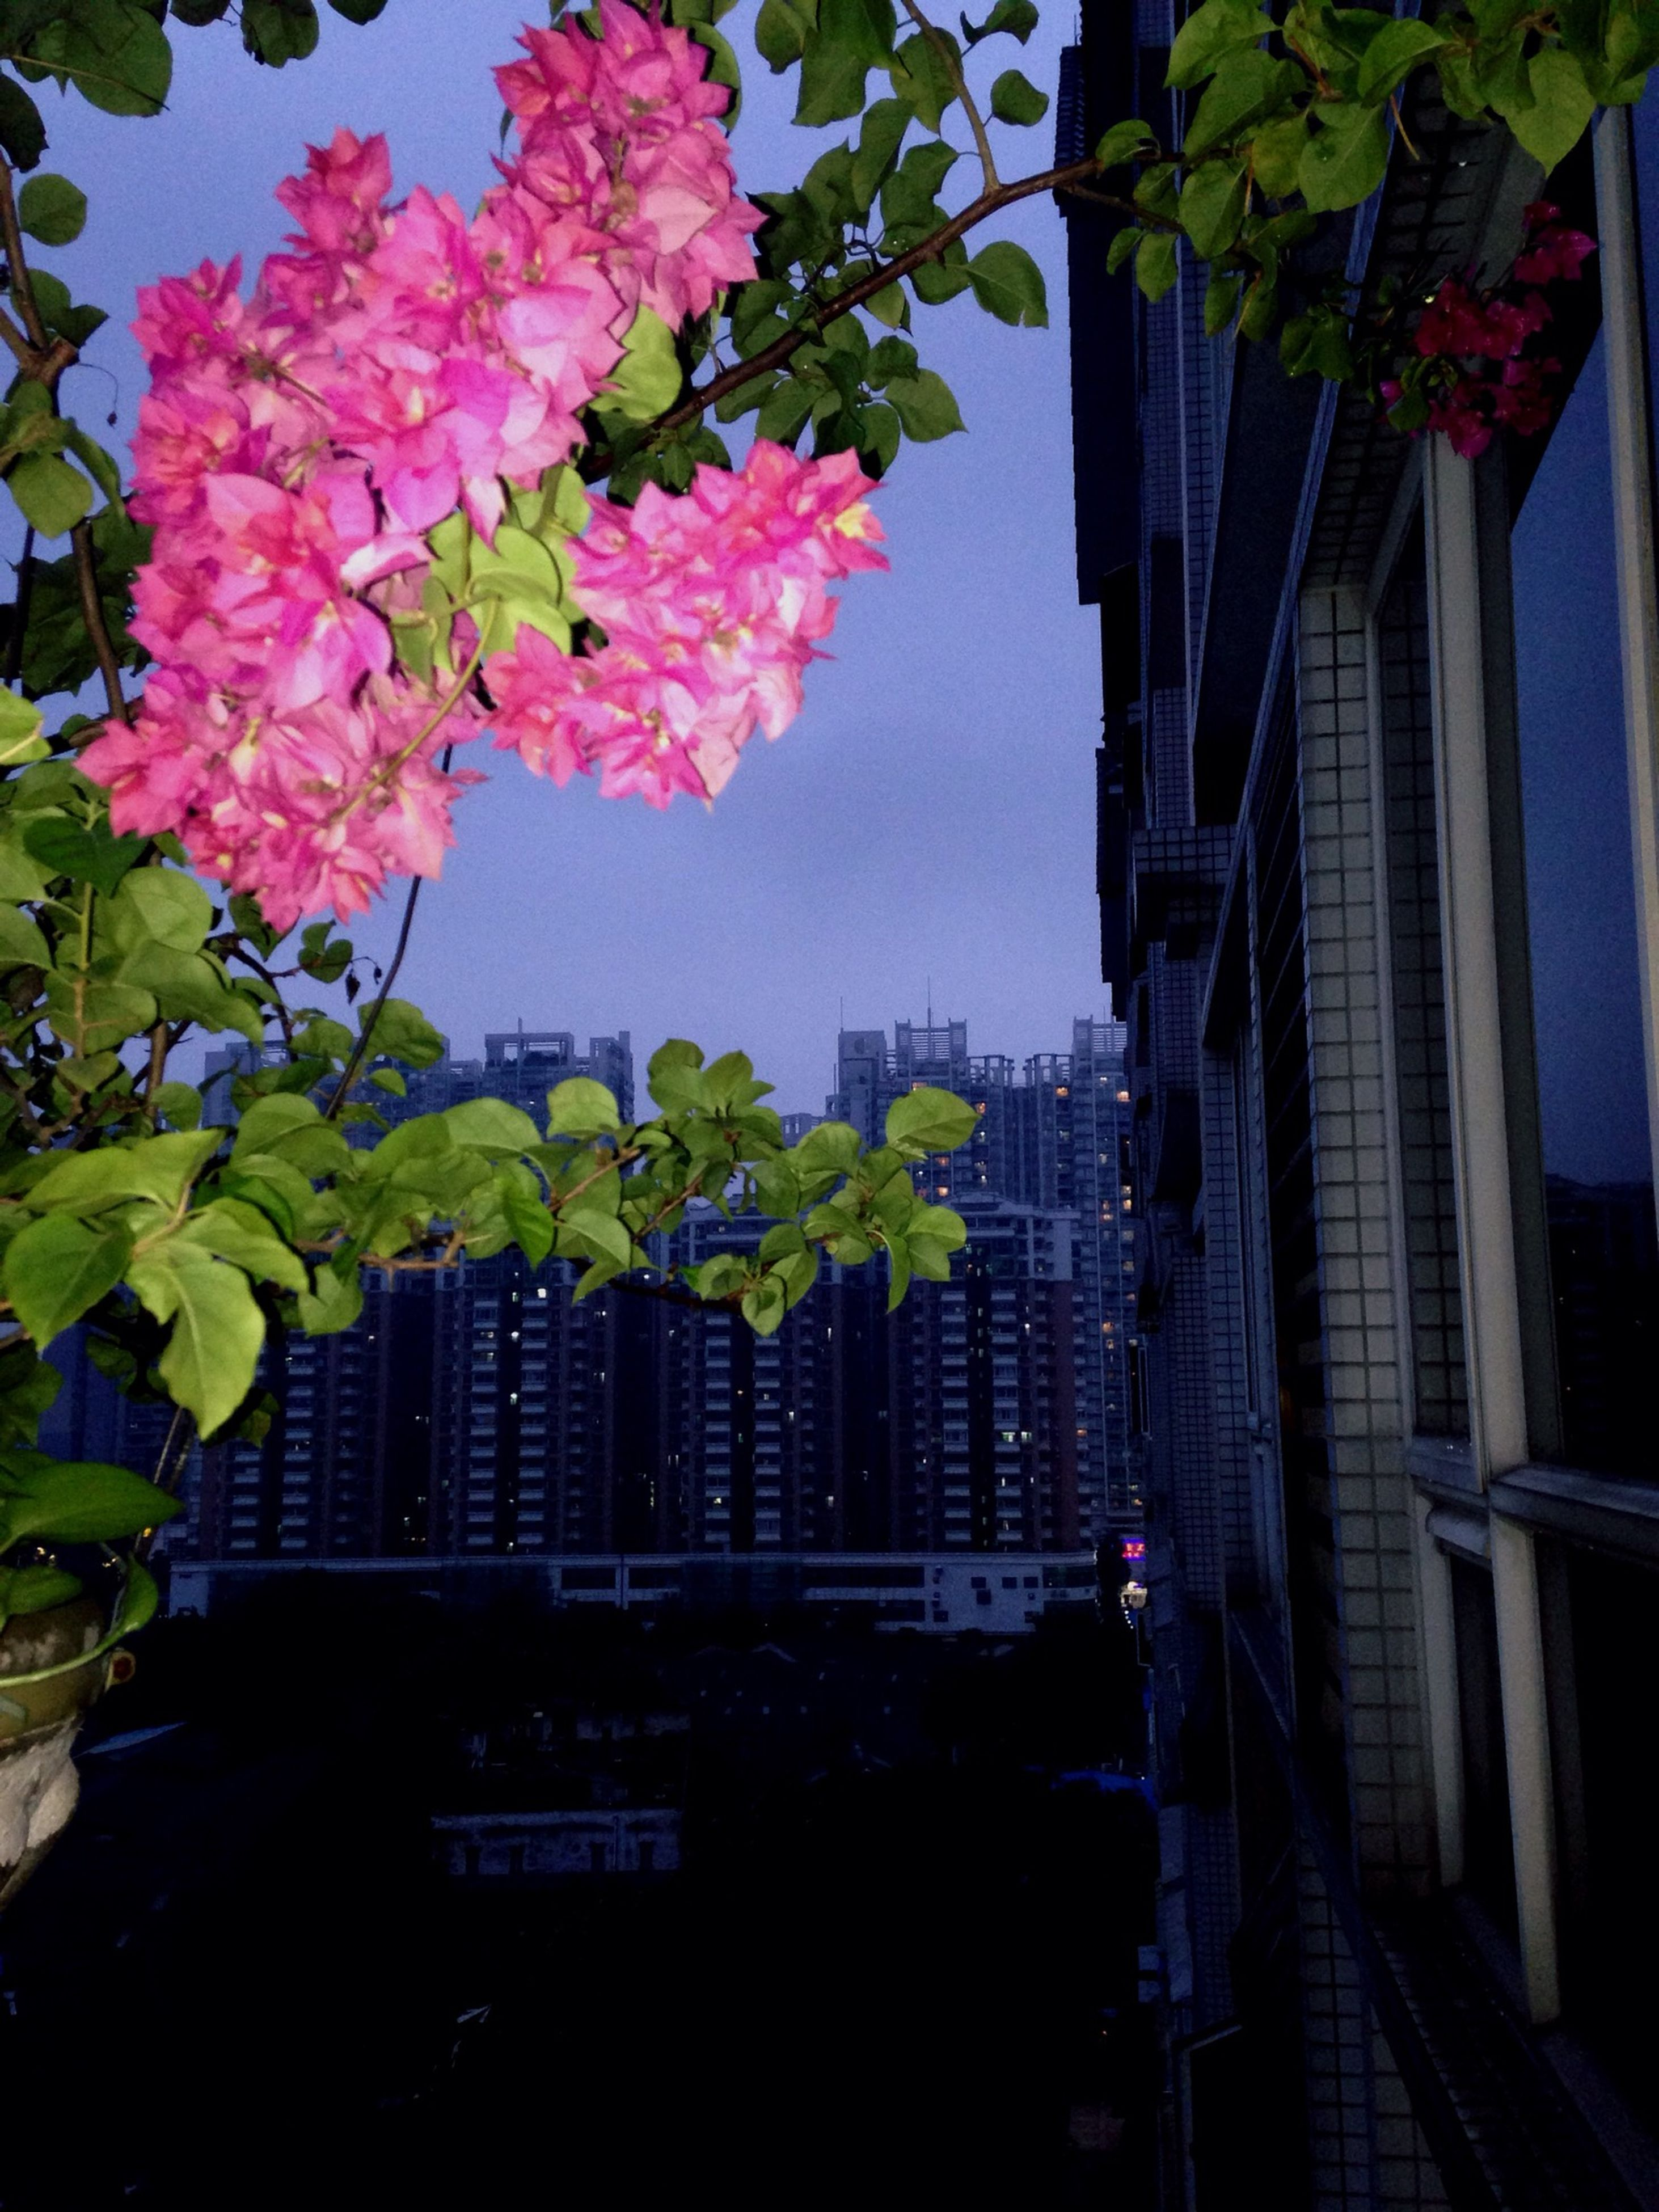 flower, building exterior, built structure, architecture, growth, tree, city, plant, potted plant, clear sky, railing, freshness, pink color, nature, outdoors, branch, day, sky, low angle view, building